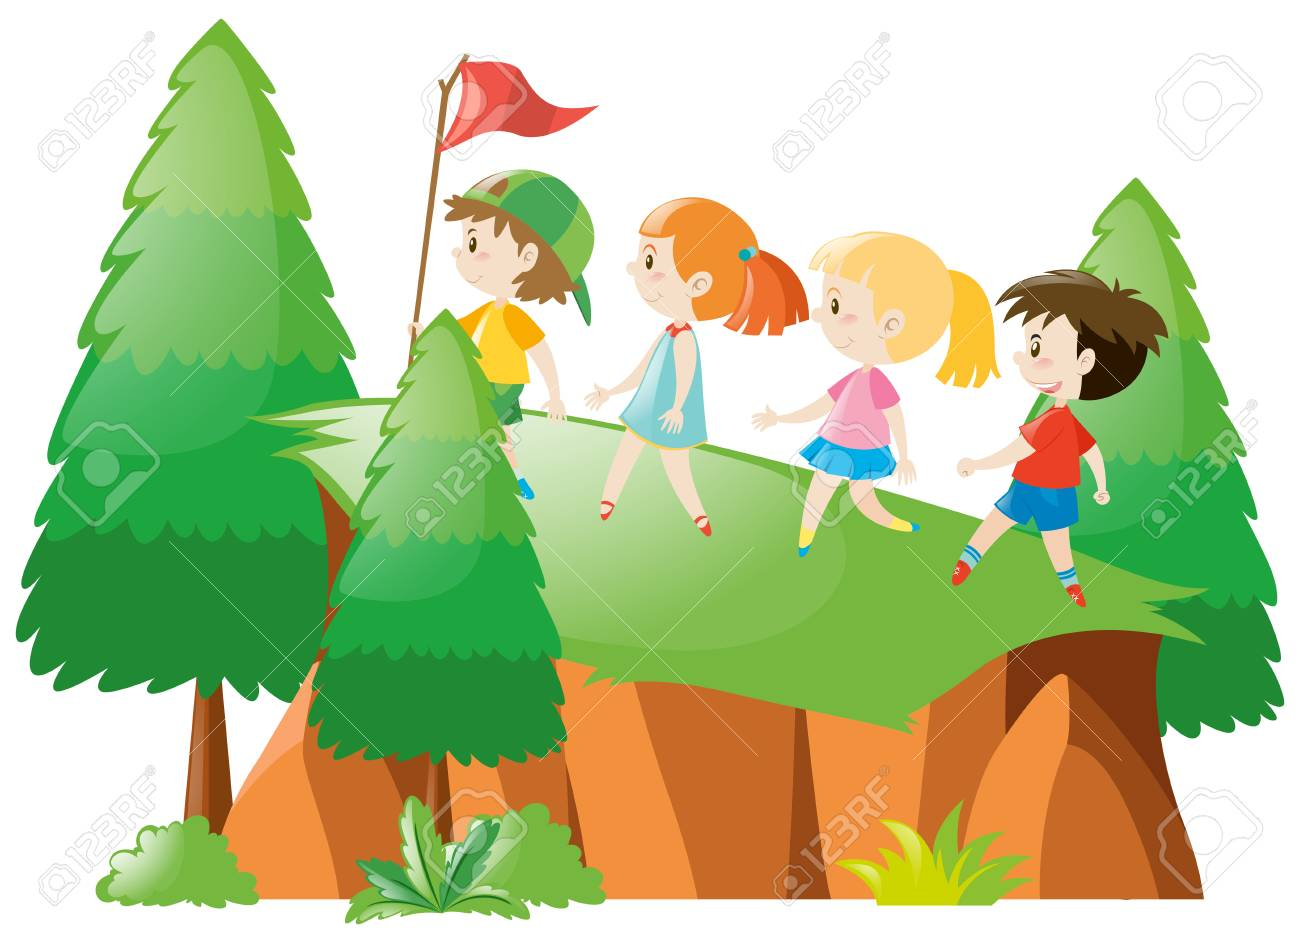 Hike clipart montagne. Free hiking moutains download